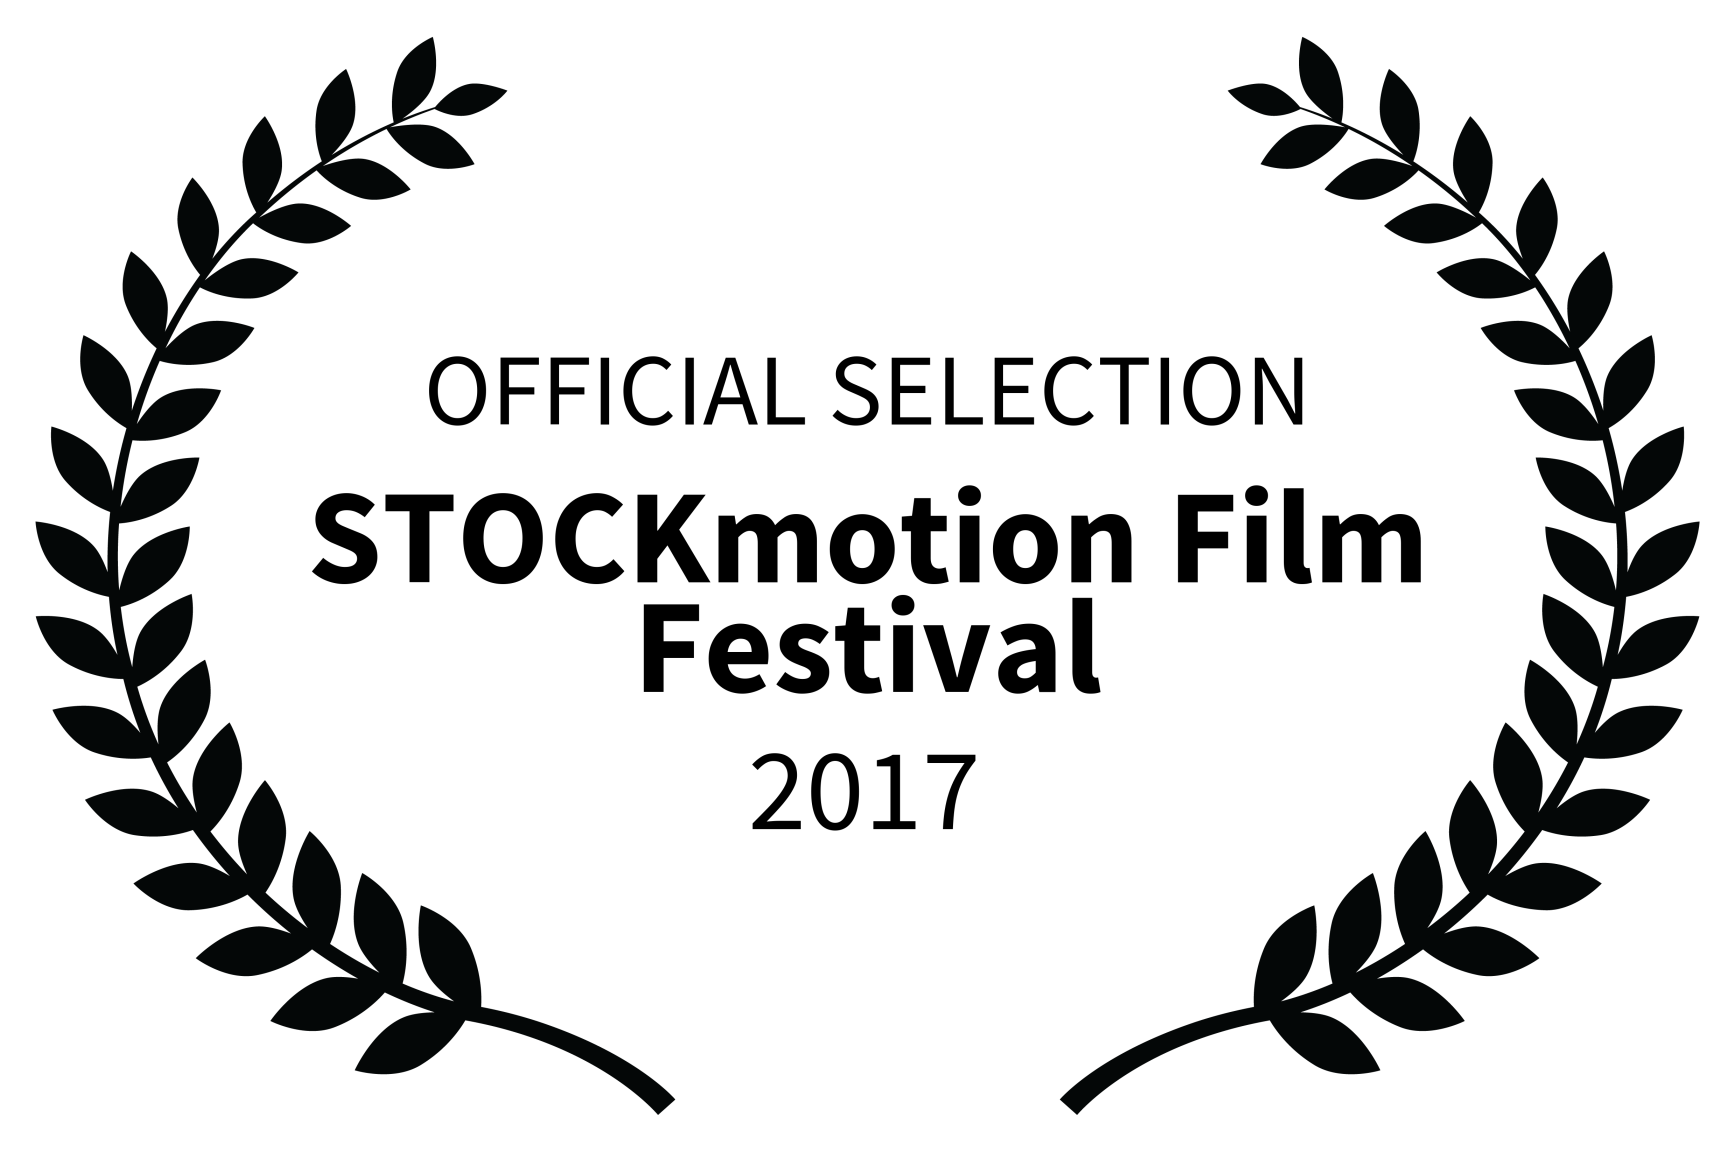 OFFICIAL SELECTION - STOCKmotion Film Festival - Either or film. antingen eller en film av Anton Forsdik.